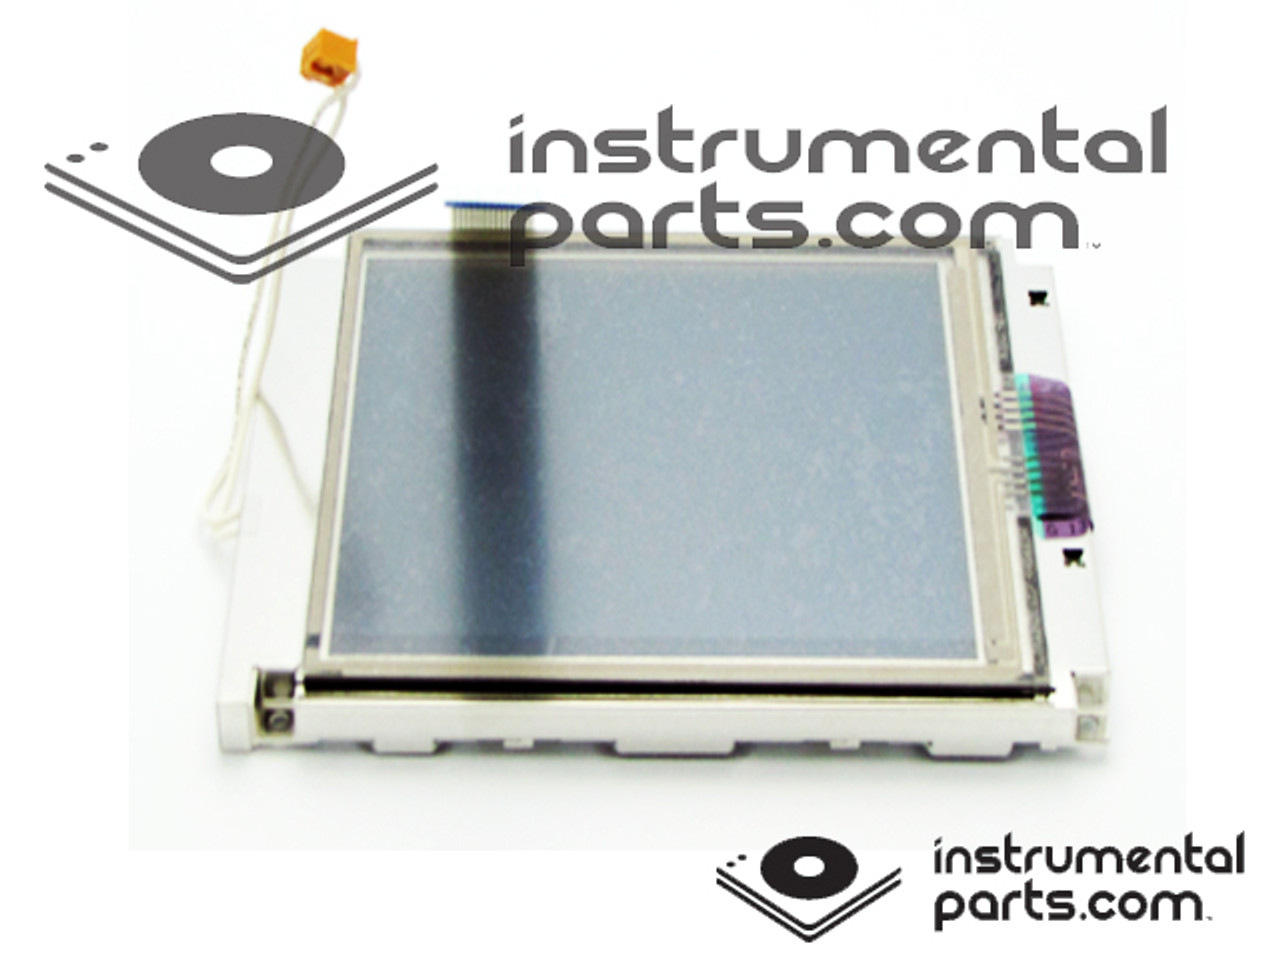 Korg Touch Screen LCD Replacement for Triton and Trinity - IN STOCK